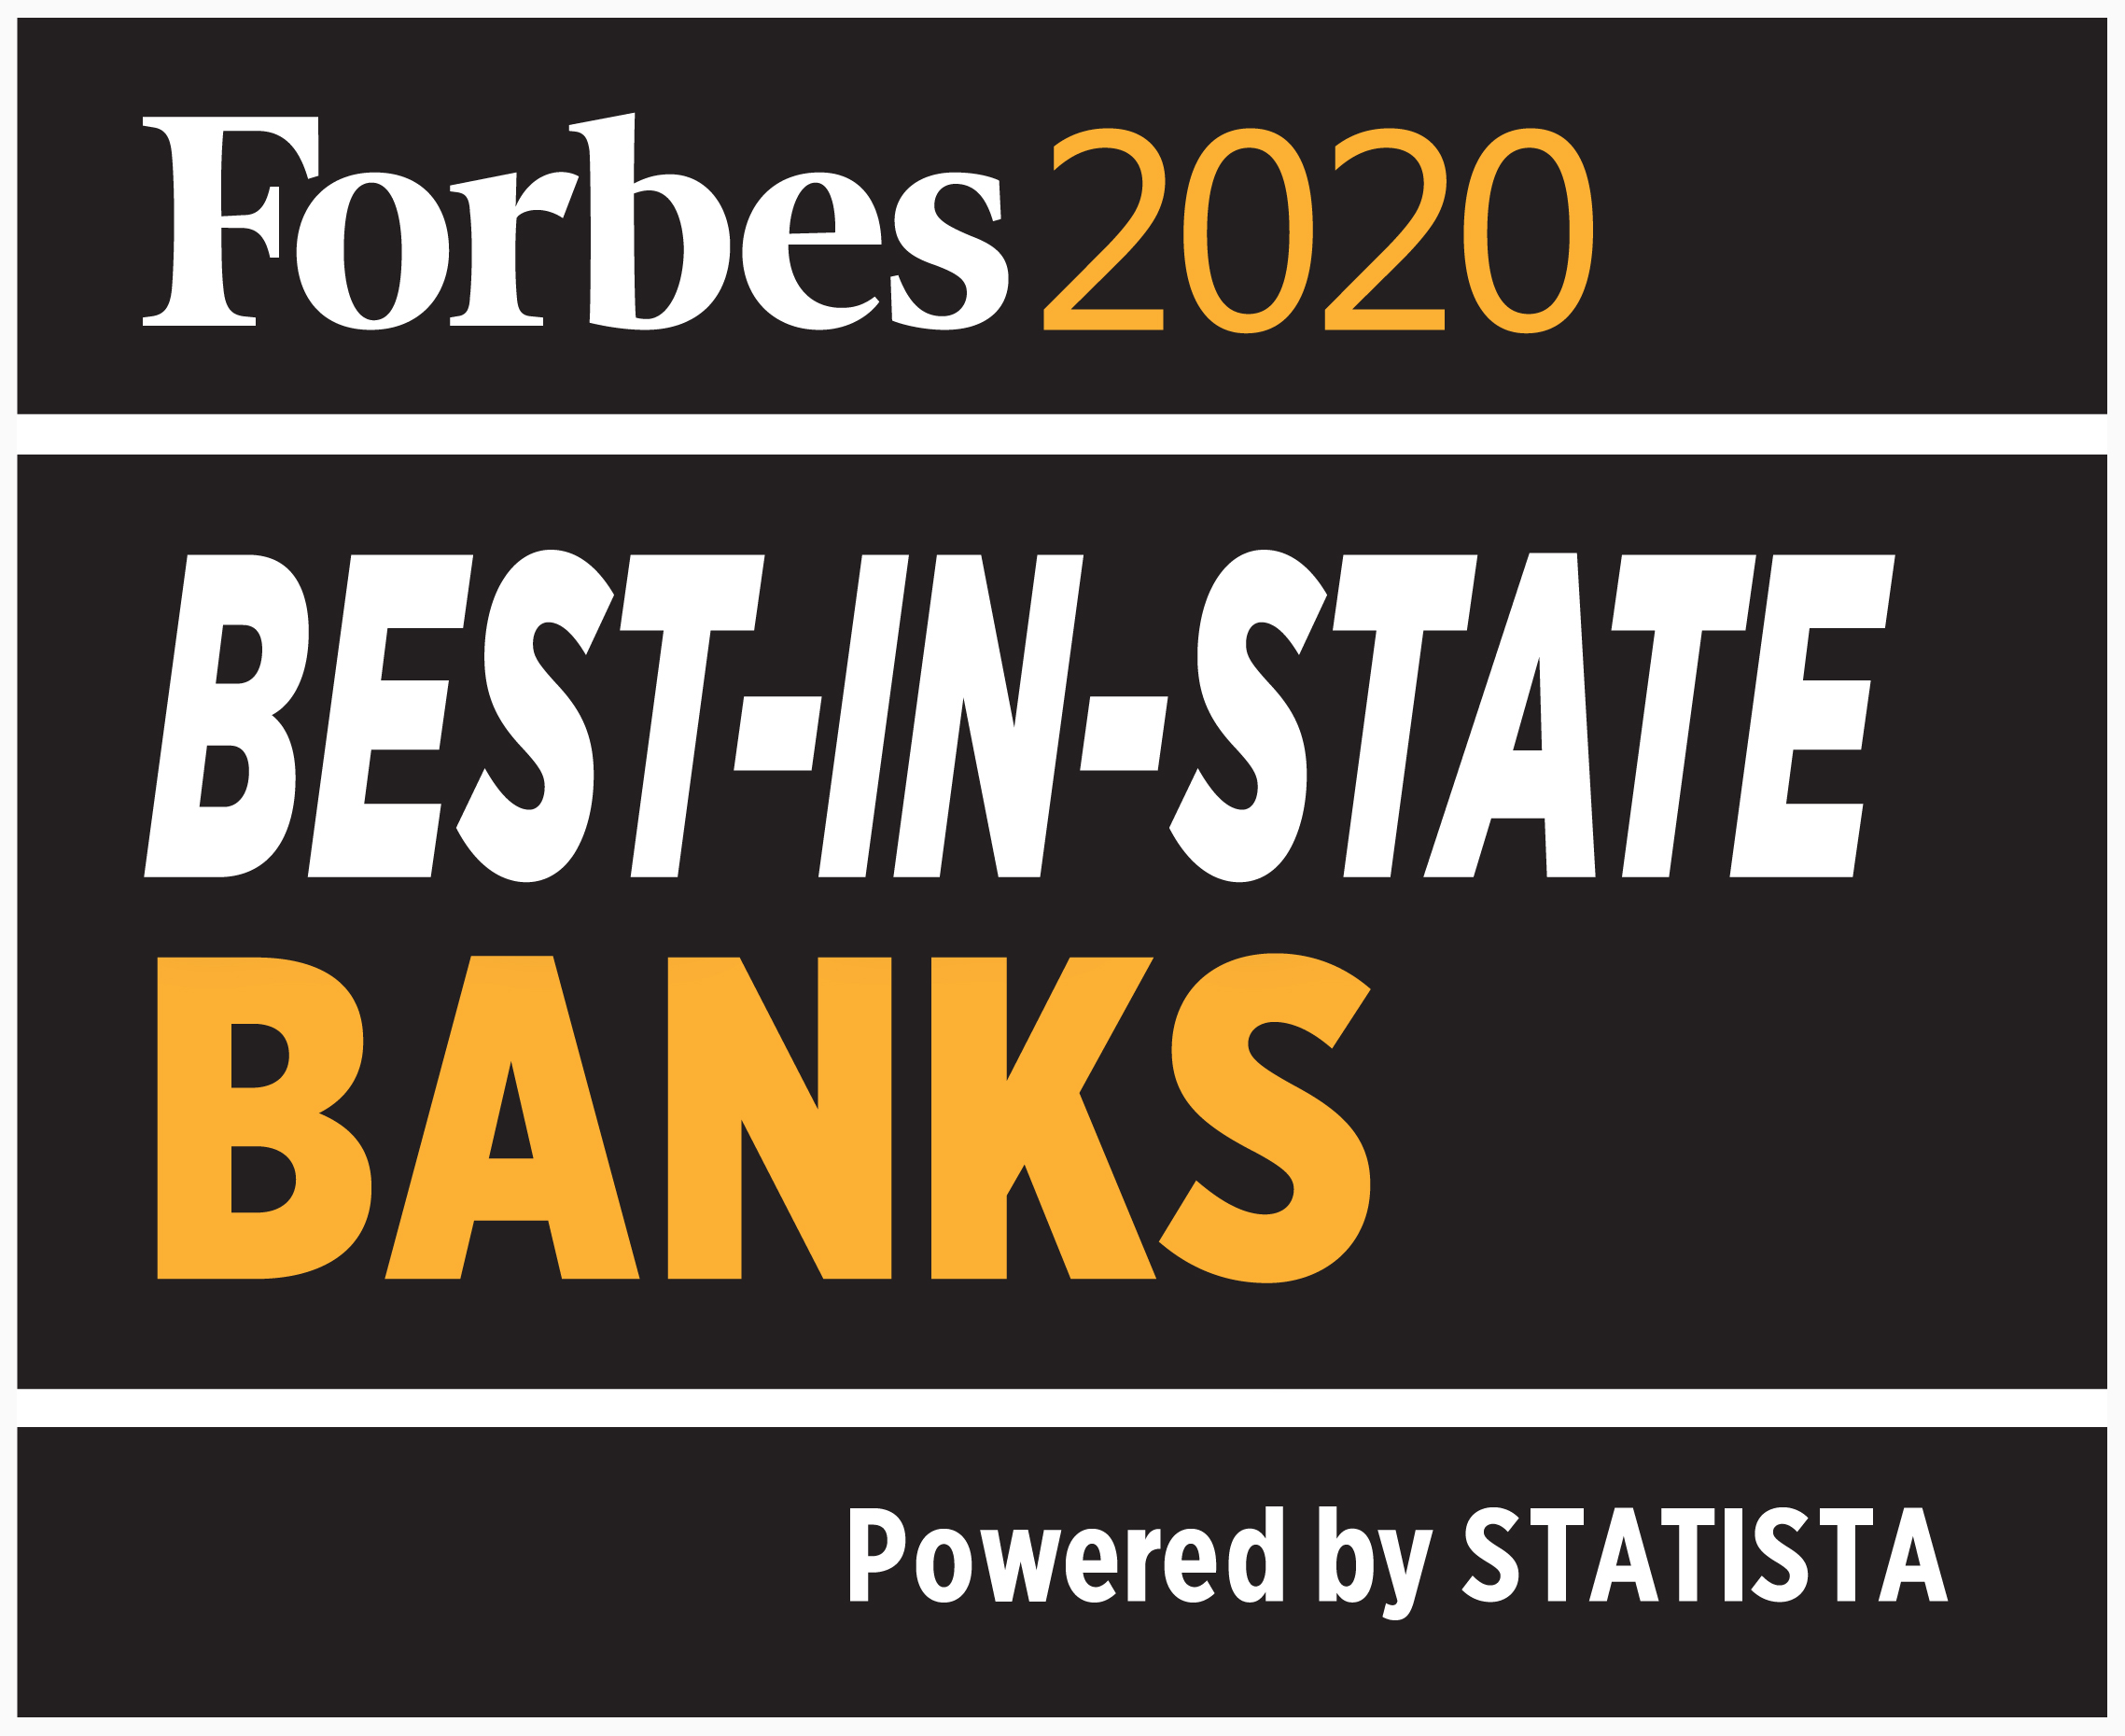 #1 Best Bank in Indiana